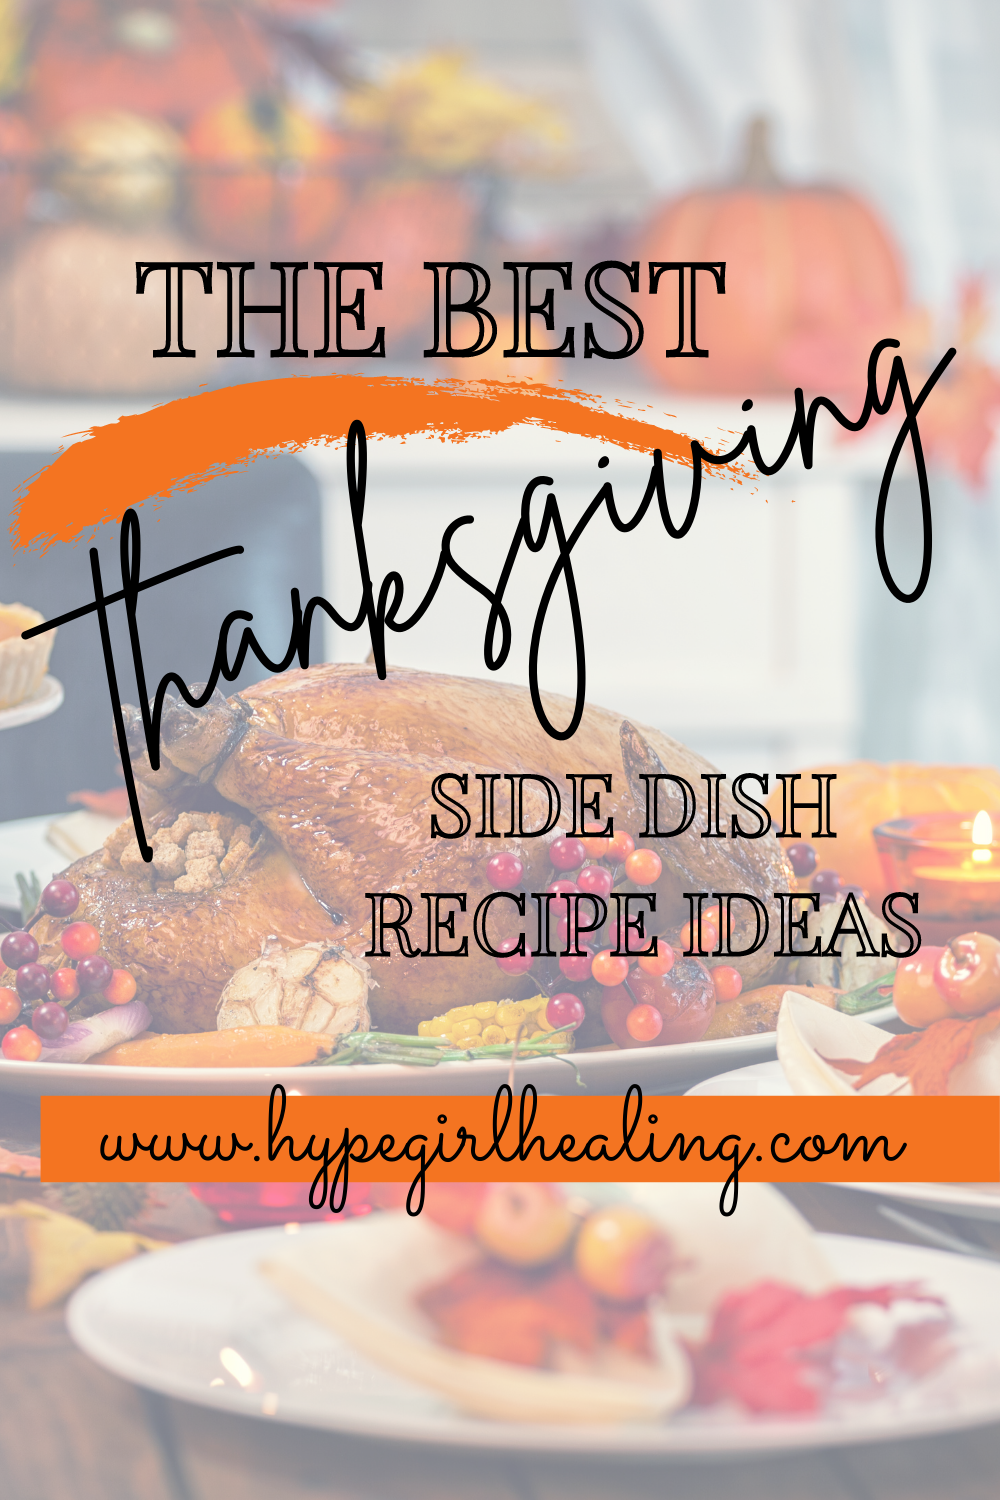 Thanksgiving turkey with healthy side dishes on a table for the holidays